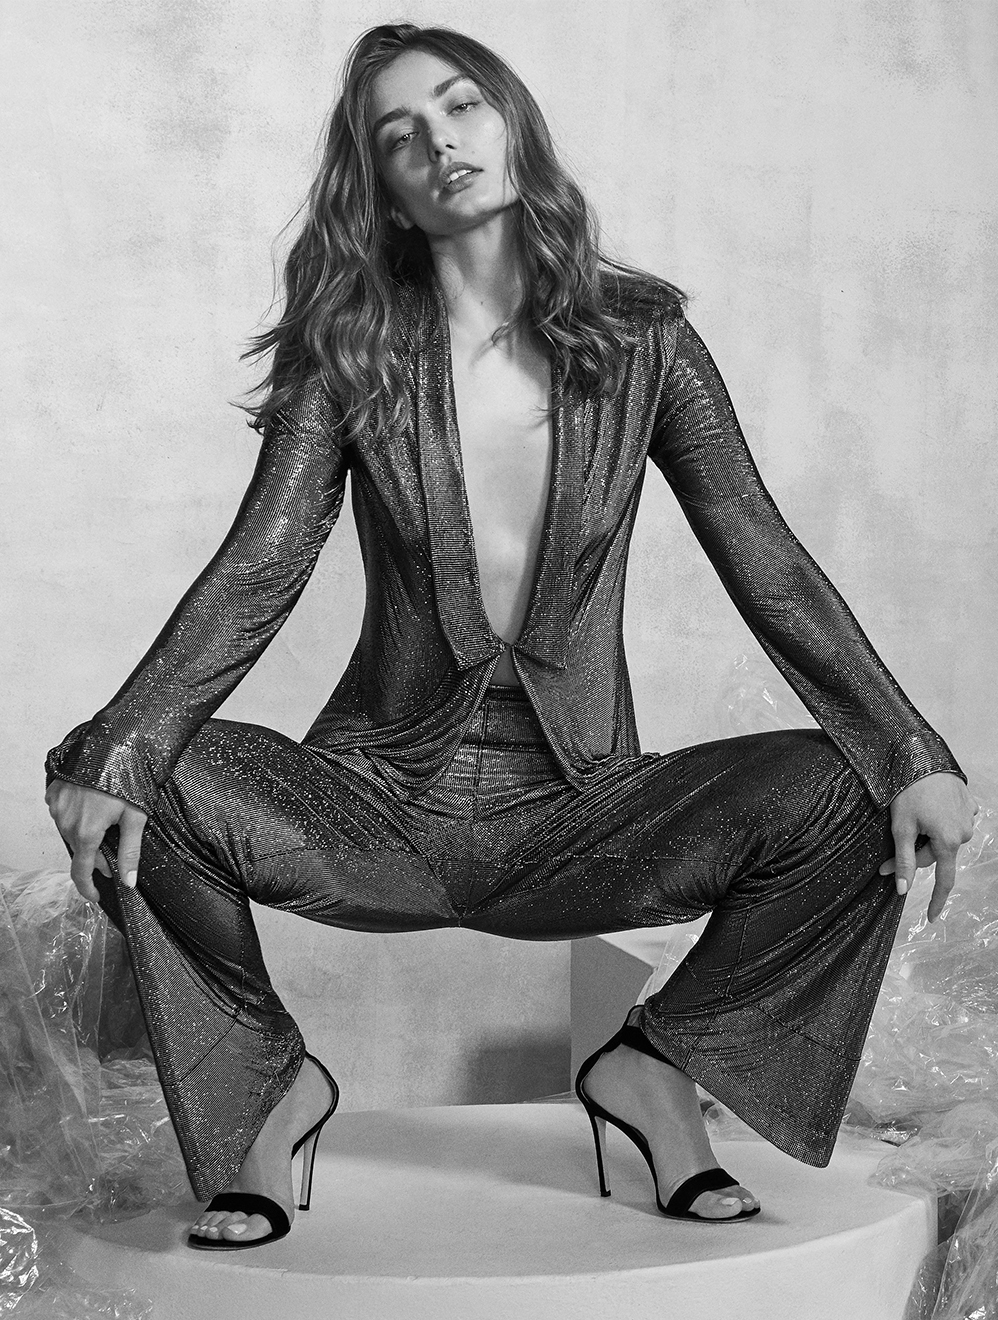 Feet Andreea Diaconu nudes (82 photo), Sexy, Hot, Selfie, braless 2015